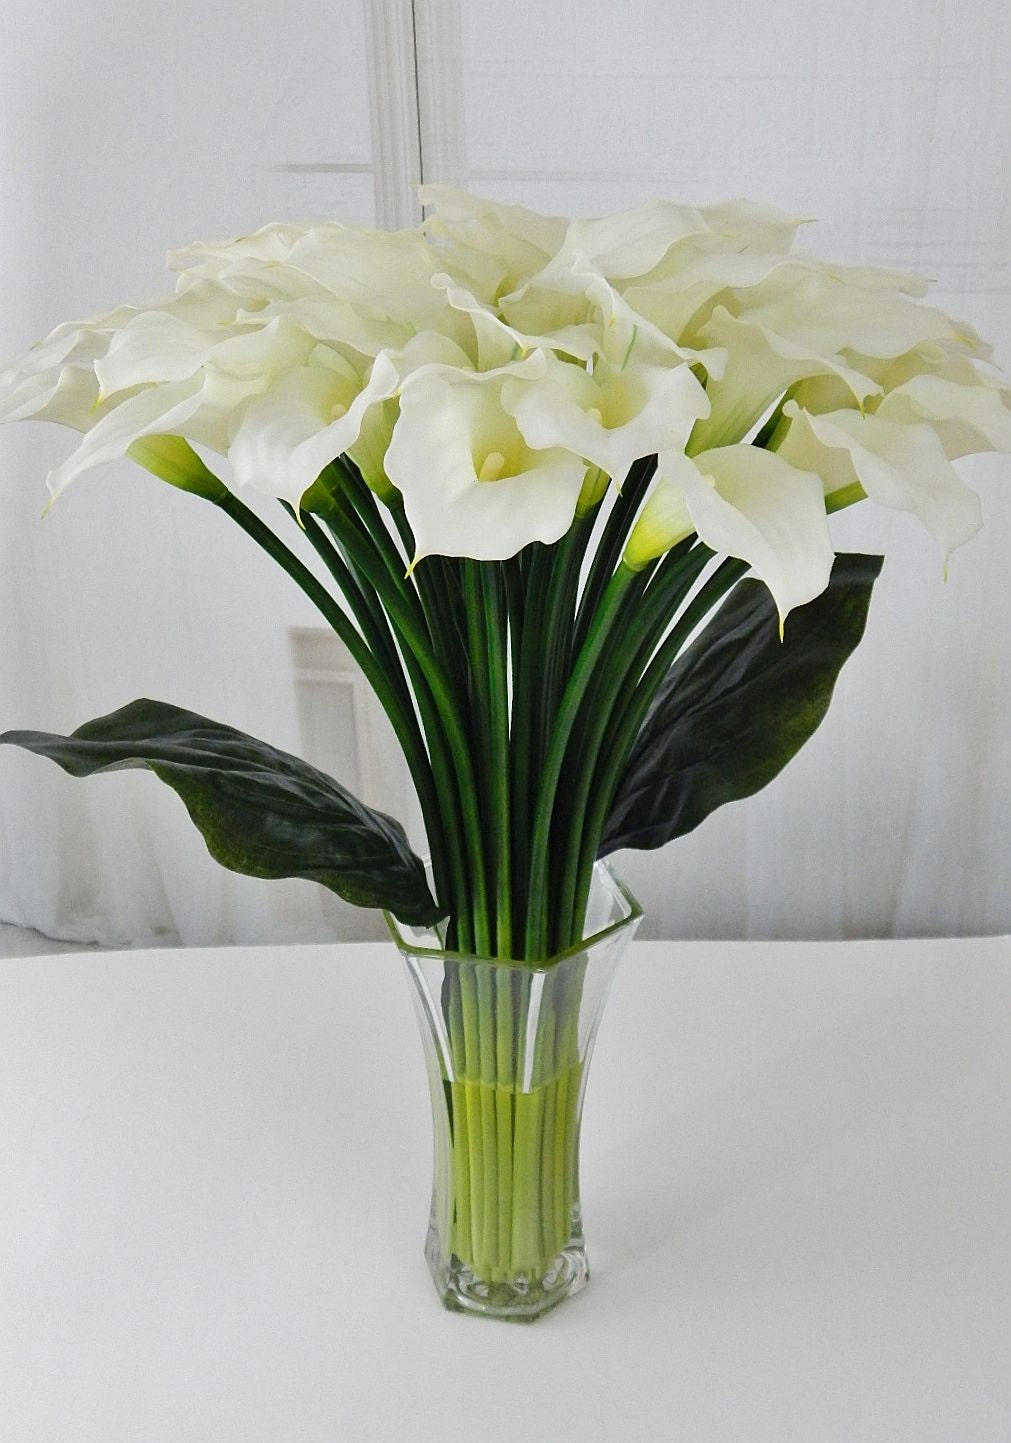 Largetall silk modern floral arrangement calla lilylilies largetall silk modern floral arrangement calla lilylilies white faux water acrylicillusion real touch flowers centerpiece glass izmirmasajfo